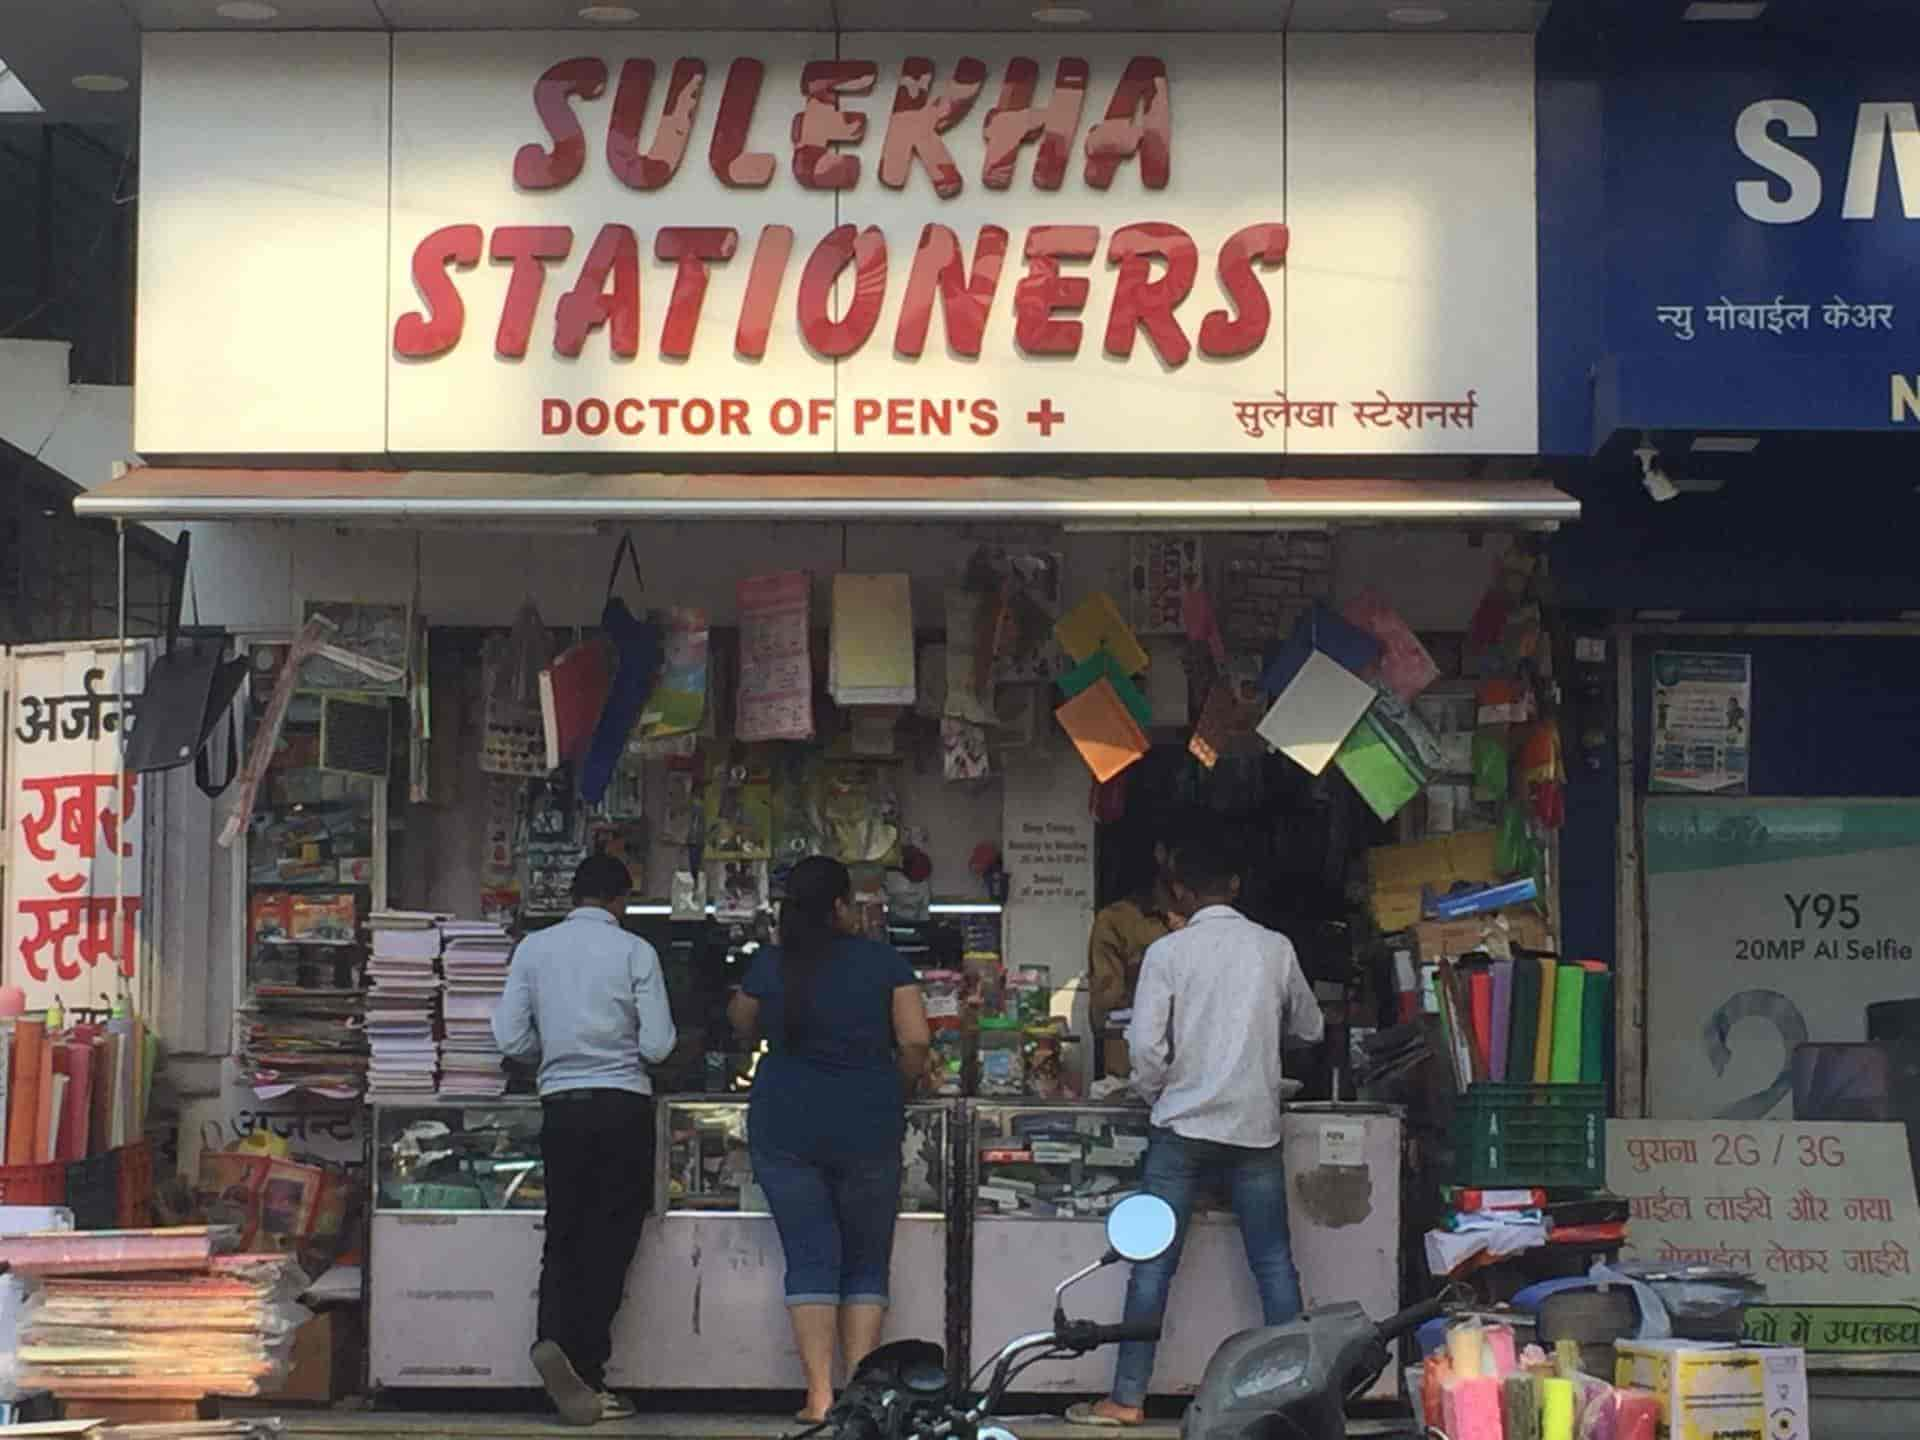 Sulekha Stationers Photos, Dharampeth, Nagpur- Pictures